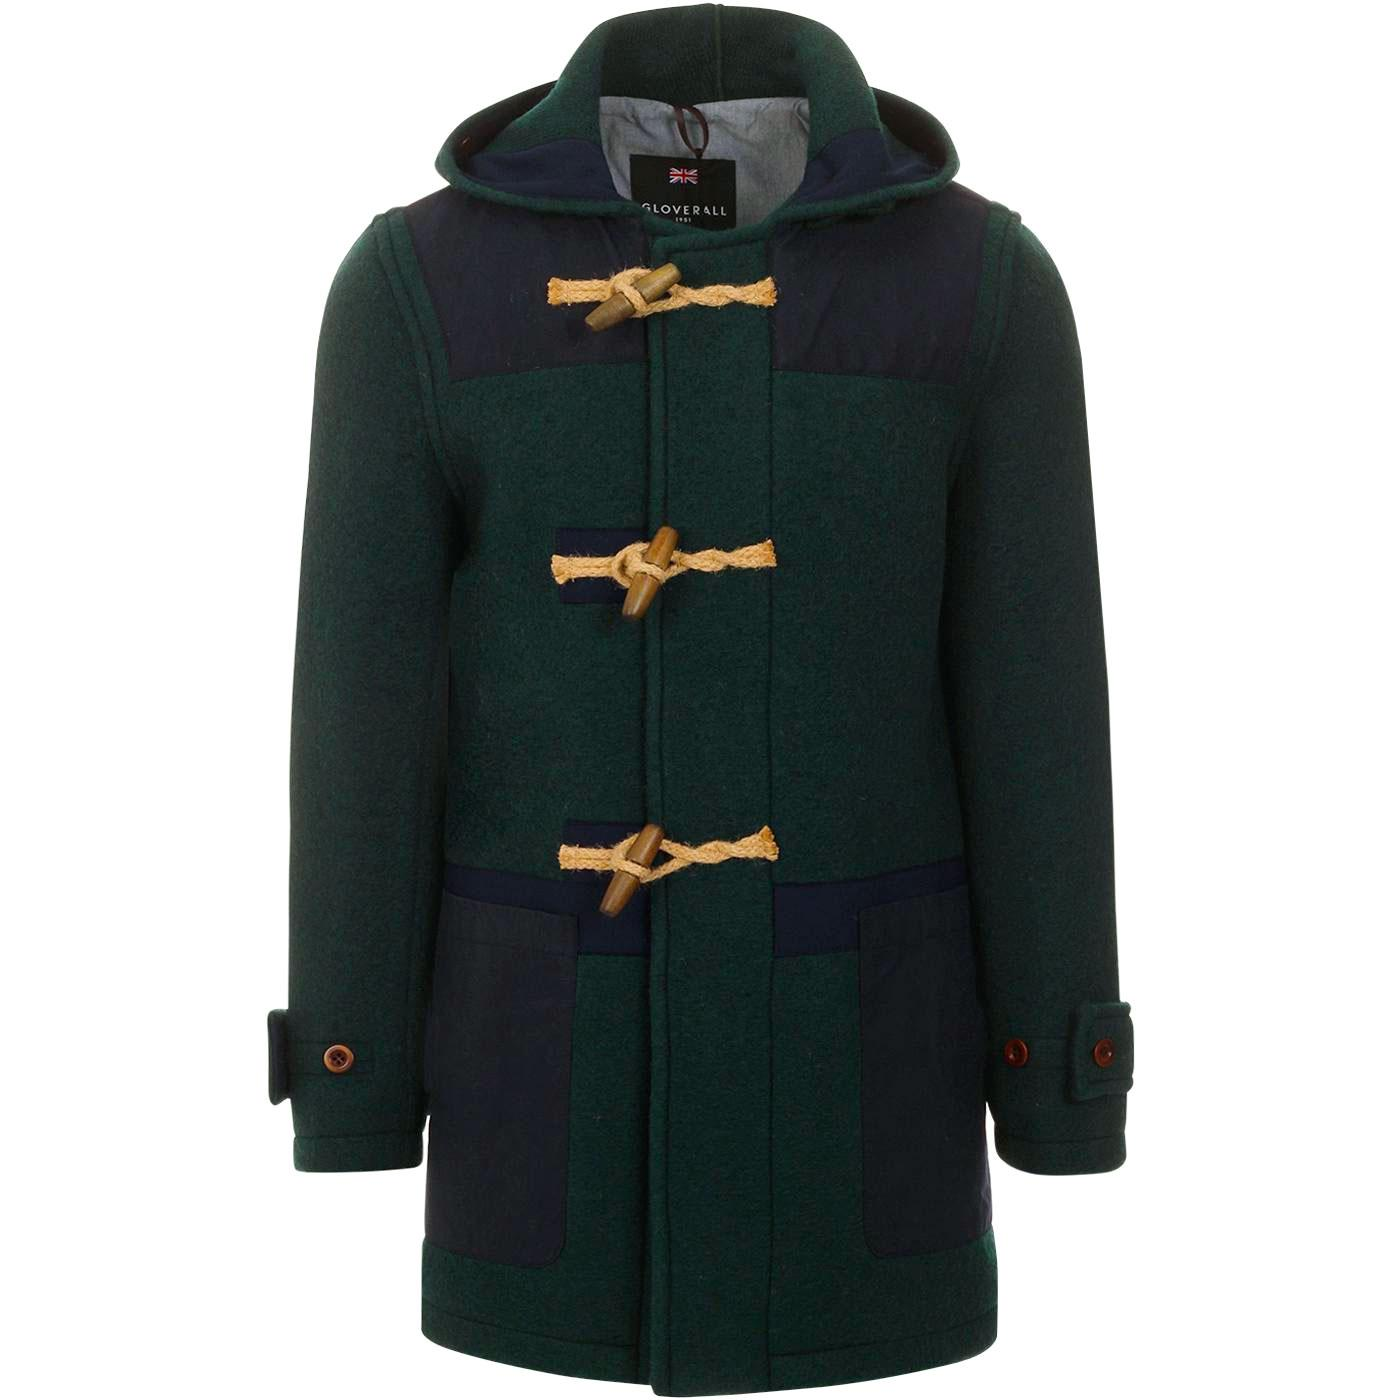 Yarmouth Monty GLOVERALL Wax Patch Duffle Coat MG